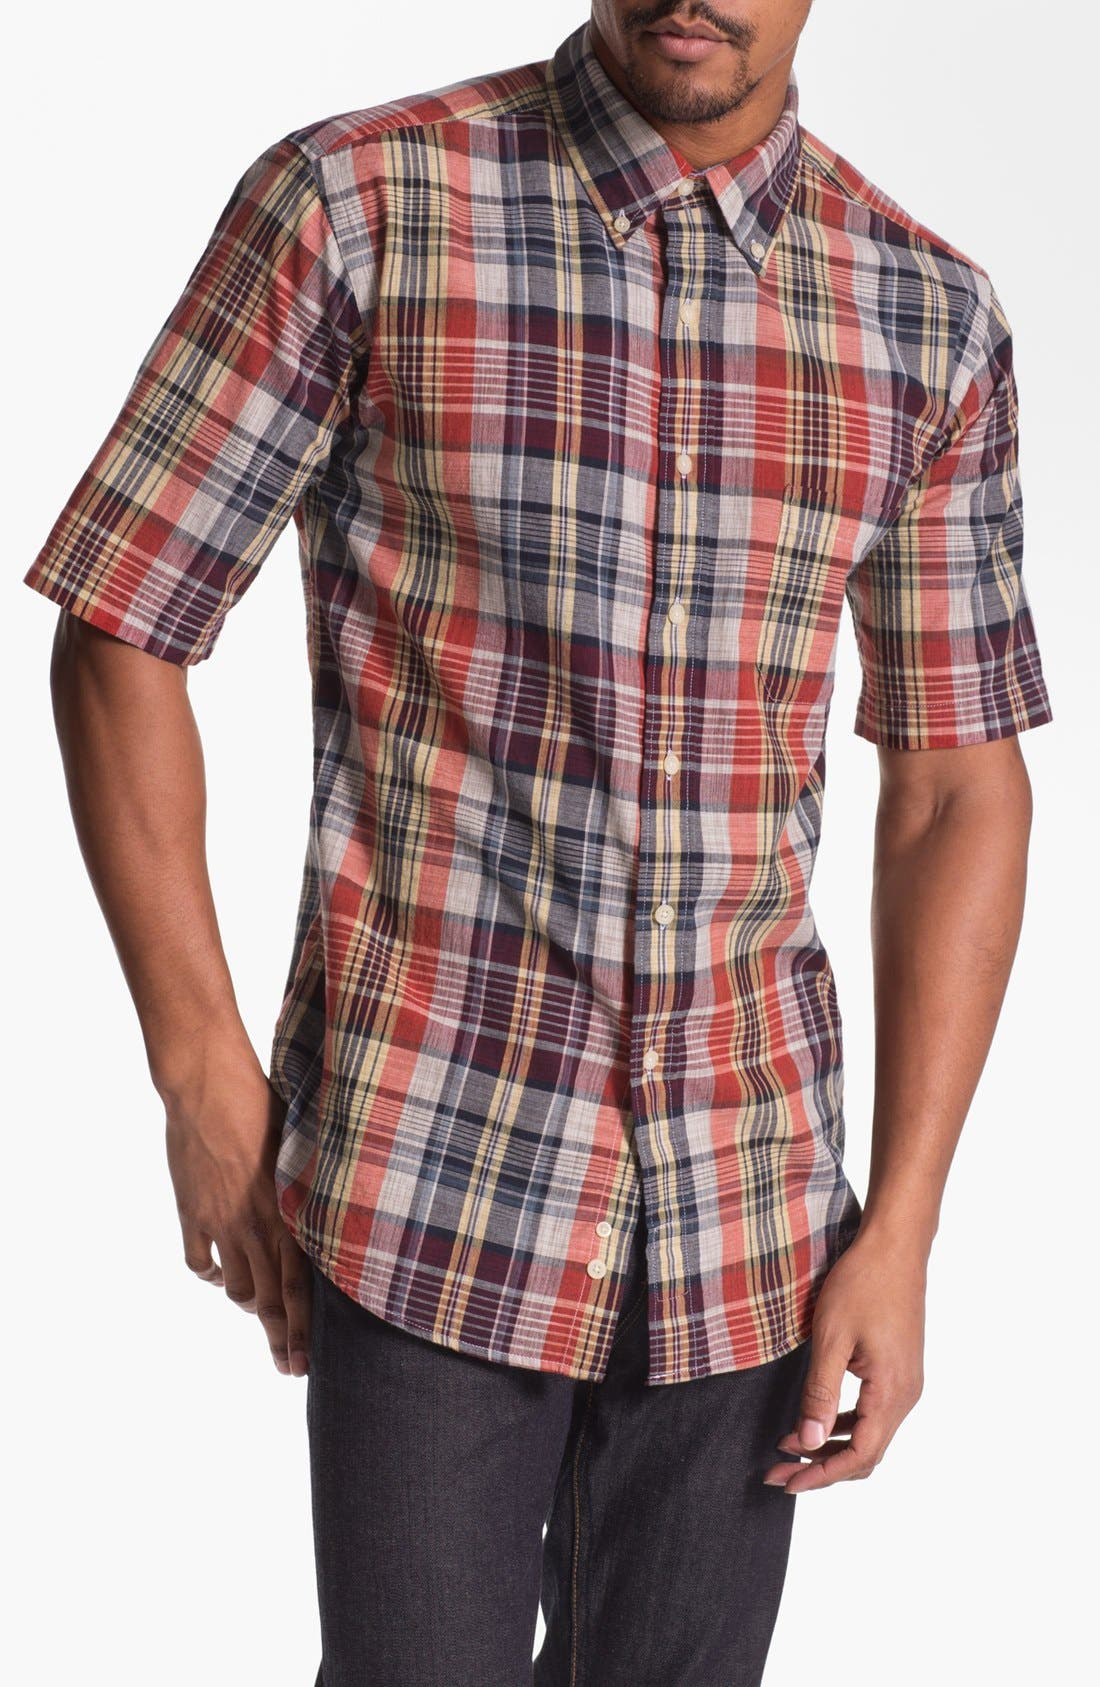 Alternate Image 1 Selected - Pendleton 'Seaside' Fitted Madras Plaid Woven Shirt